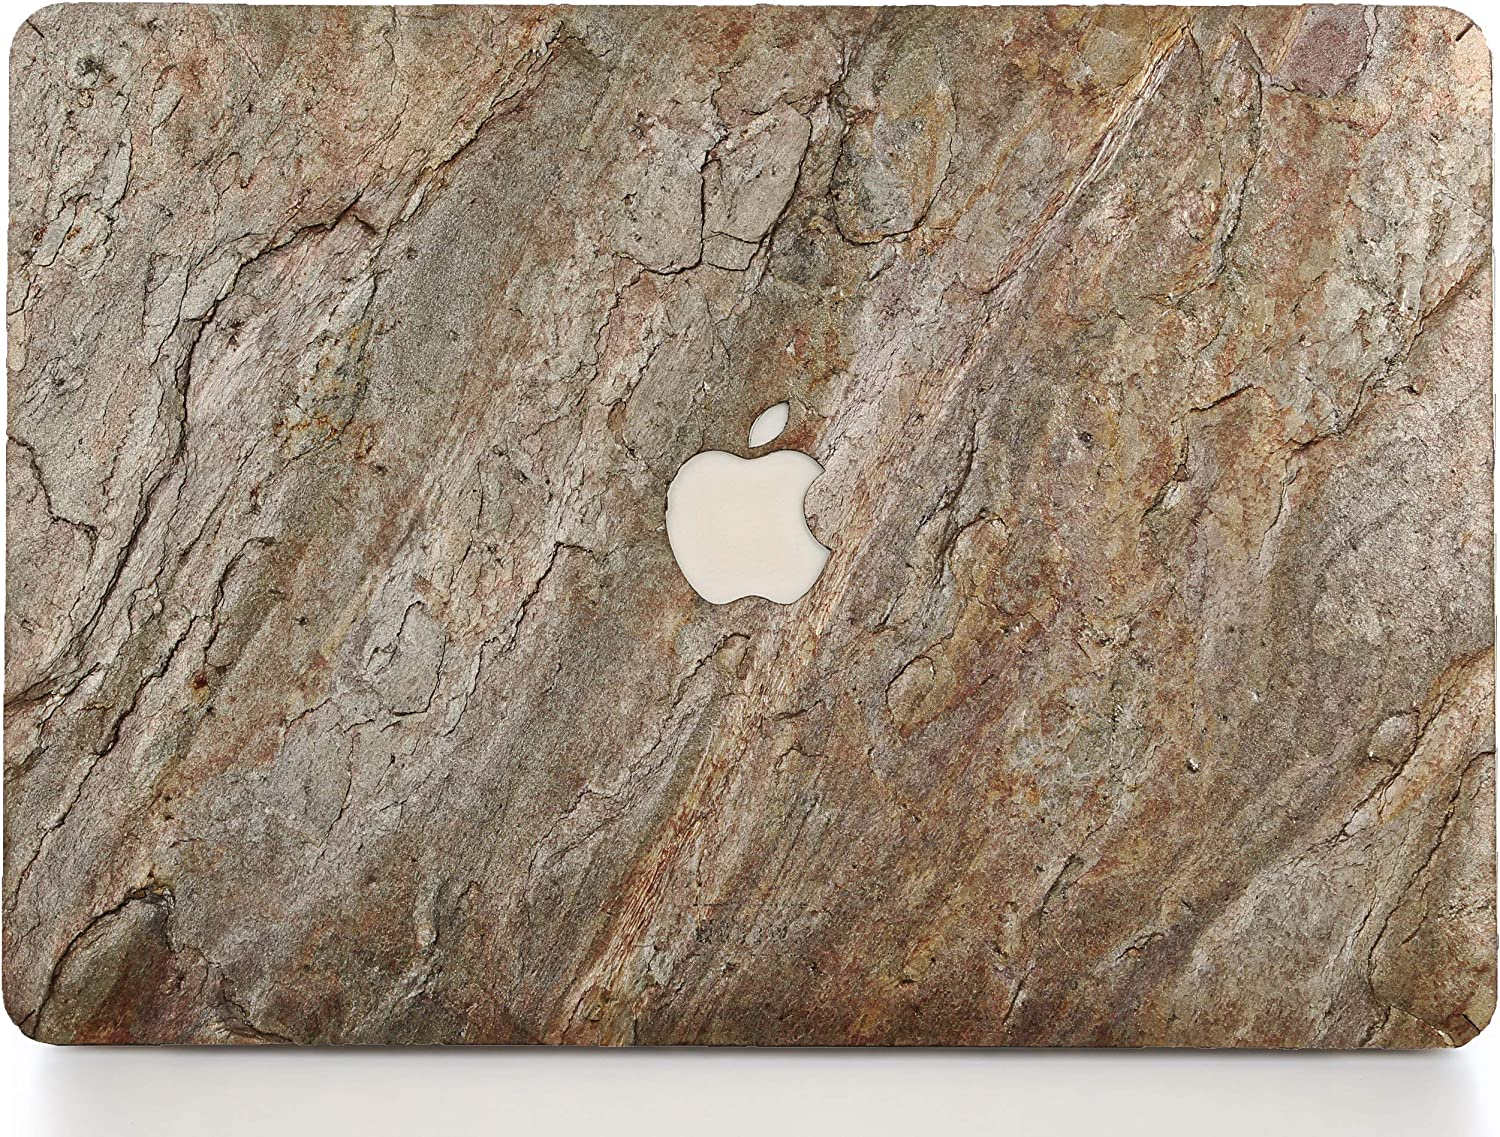 WOODWE Real Stone MacBook Skin for Mac Pro 15 inch Retina Display | Model: A1398; Mid 2012 – Mid 2015 | Natural Burning Forest Stone | TOP&Bottom